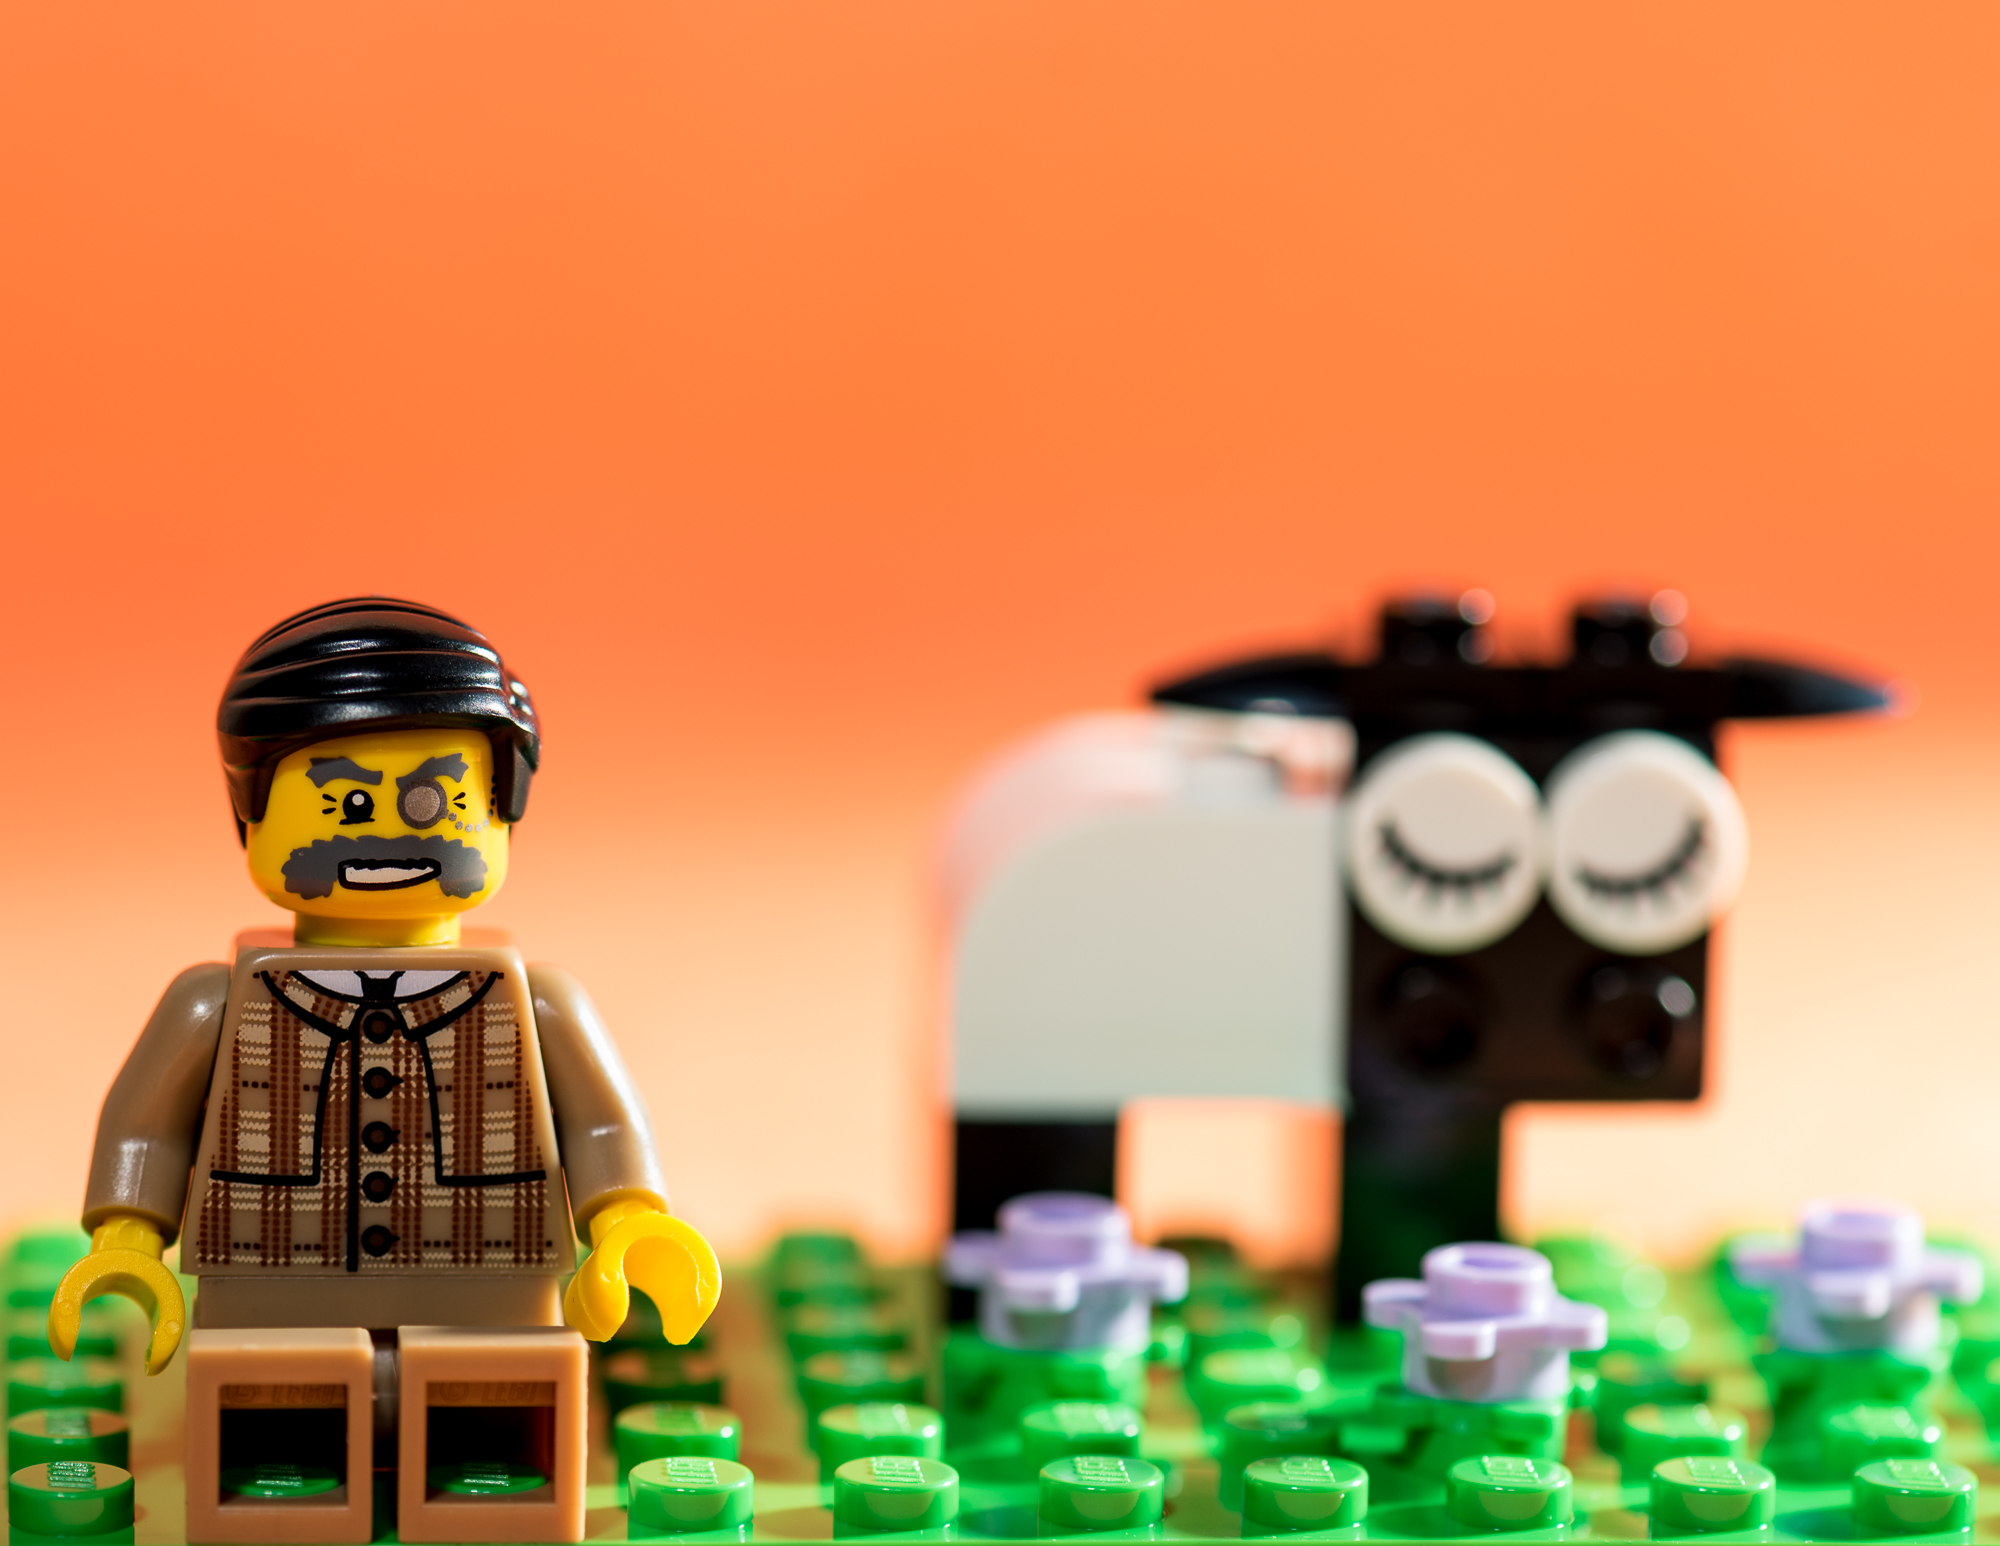 Lego Portrait Don-1.jpg